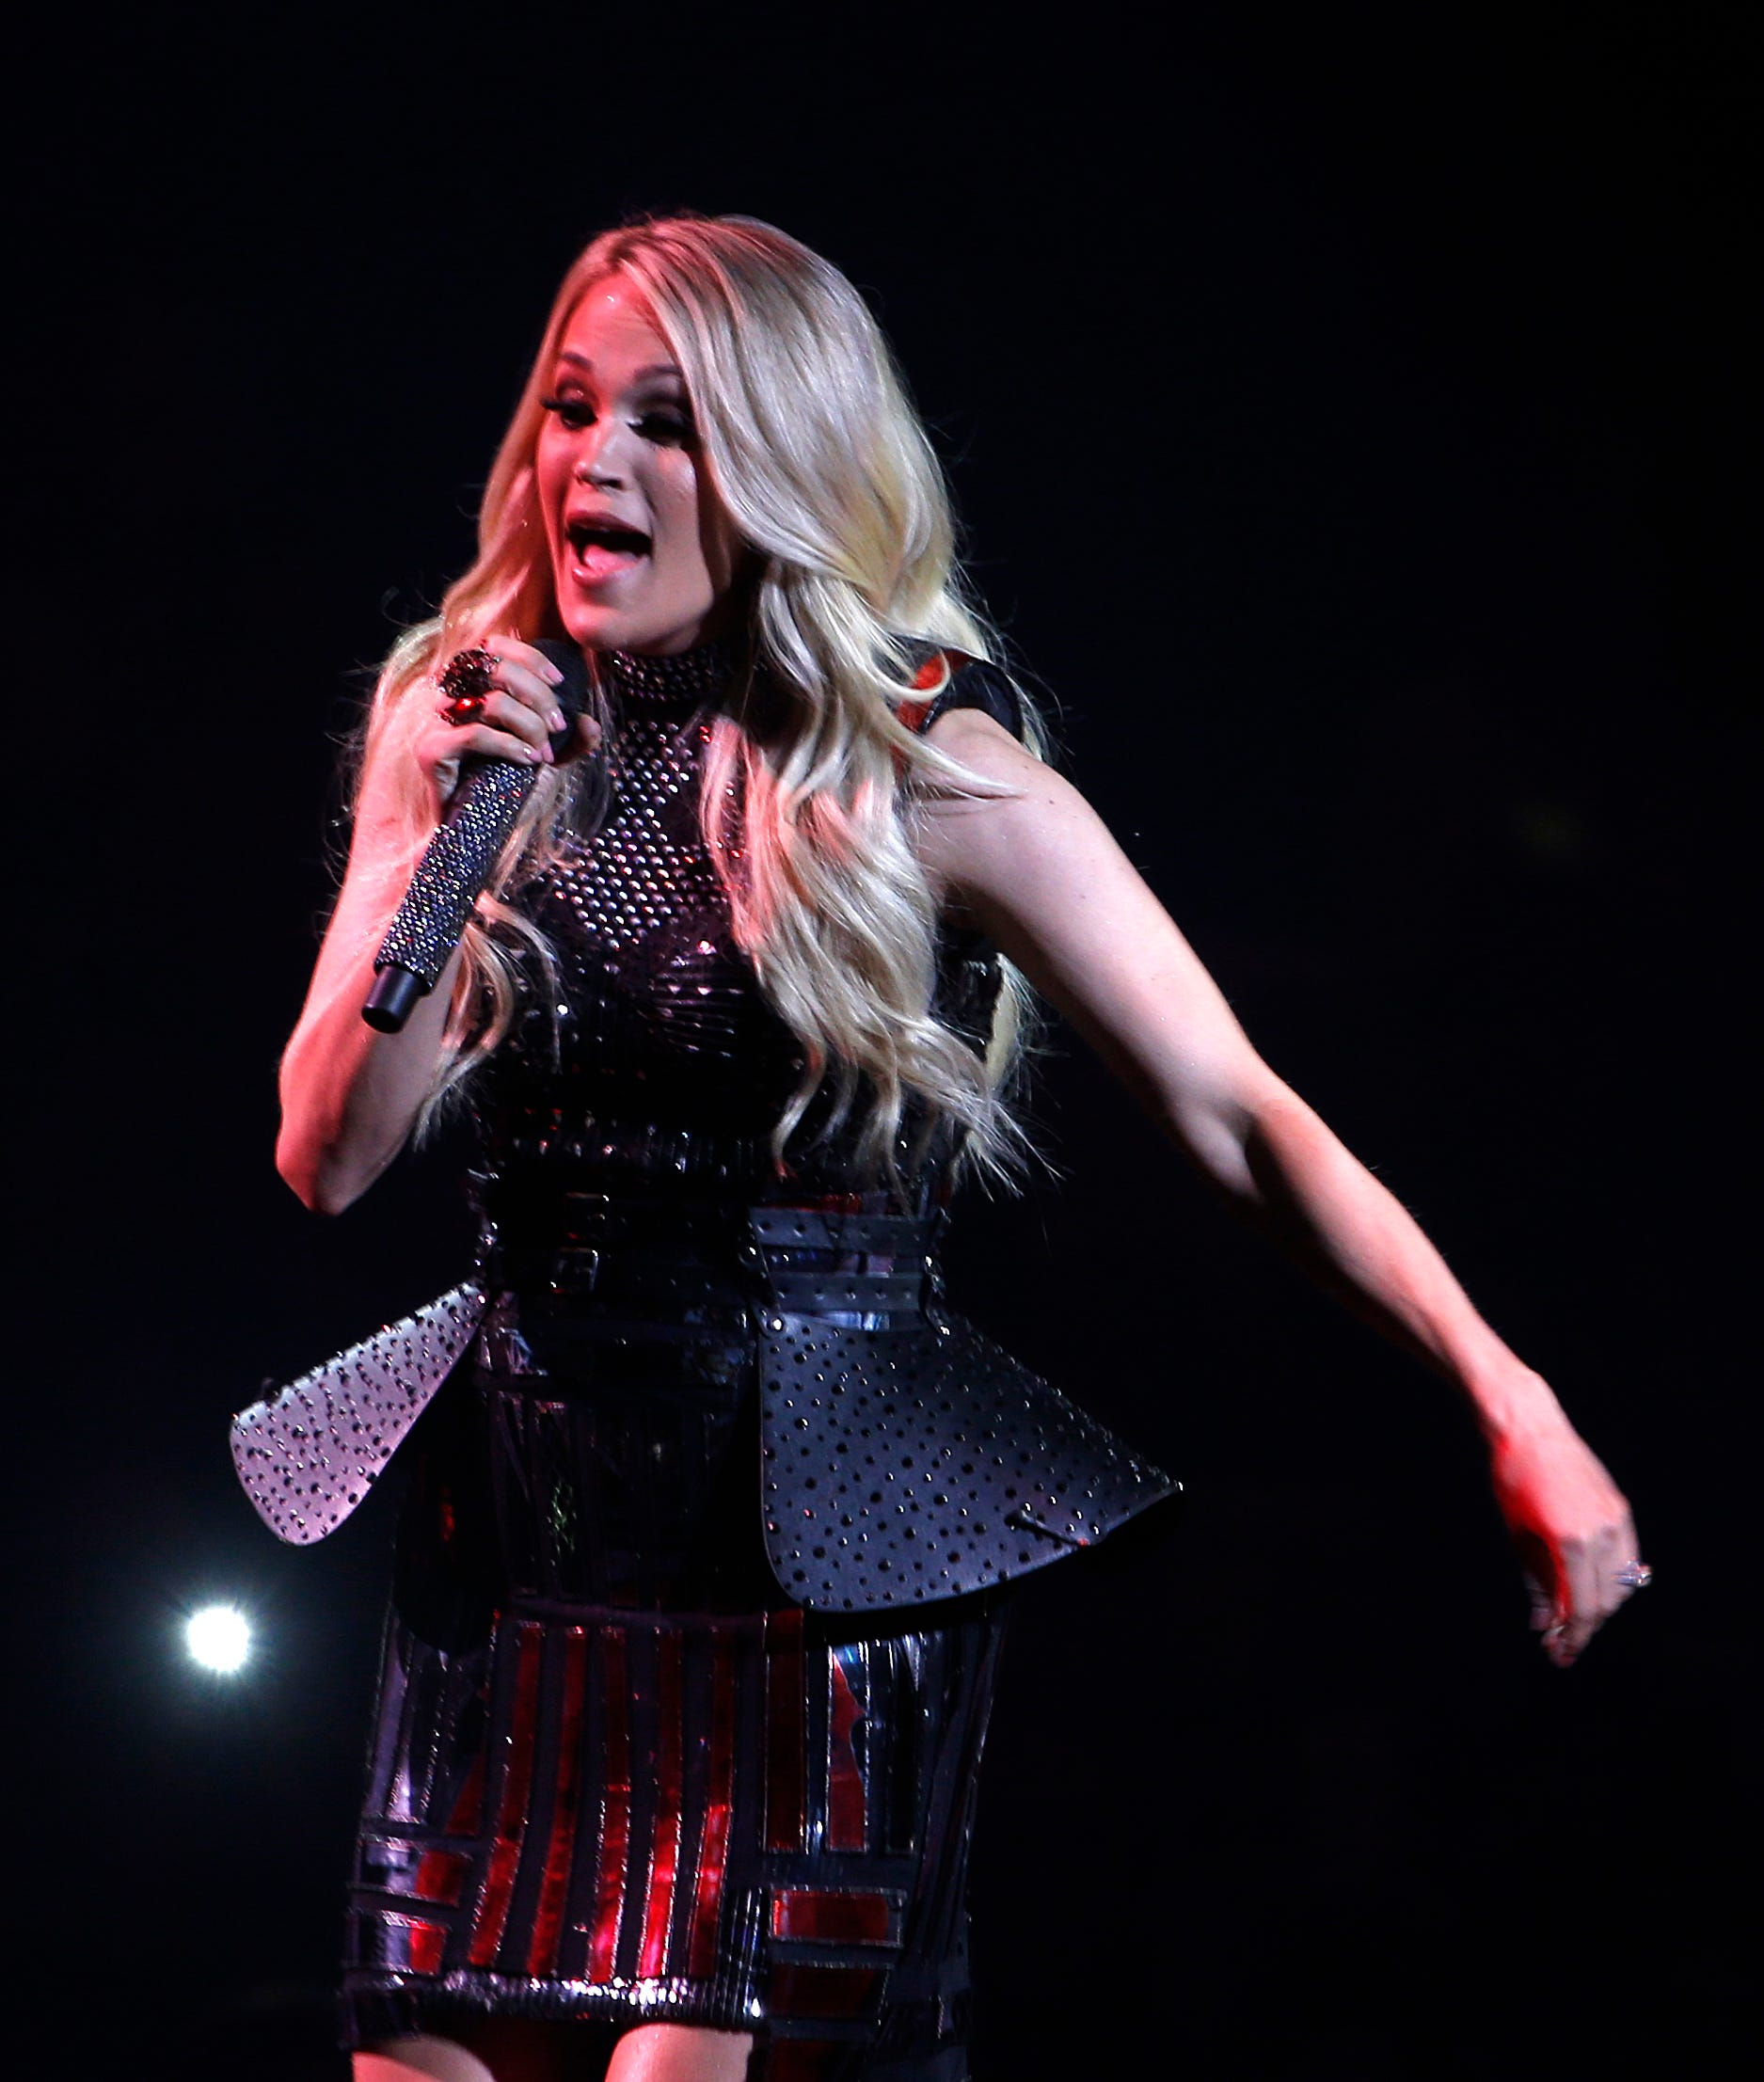 carrie underwood tour - HD1875×2213